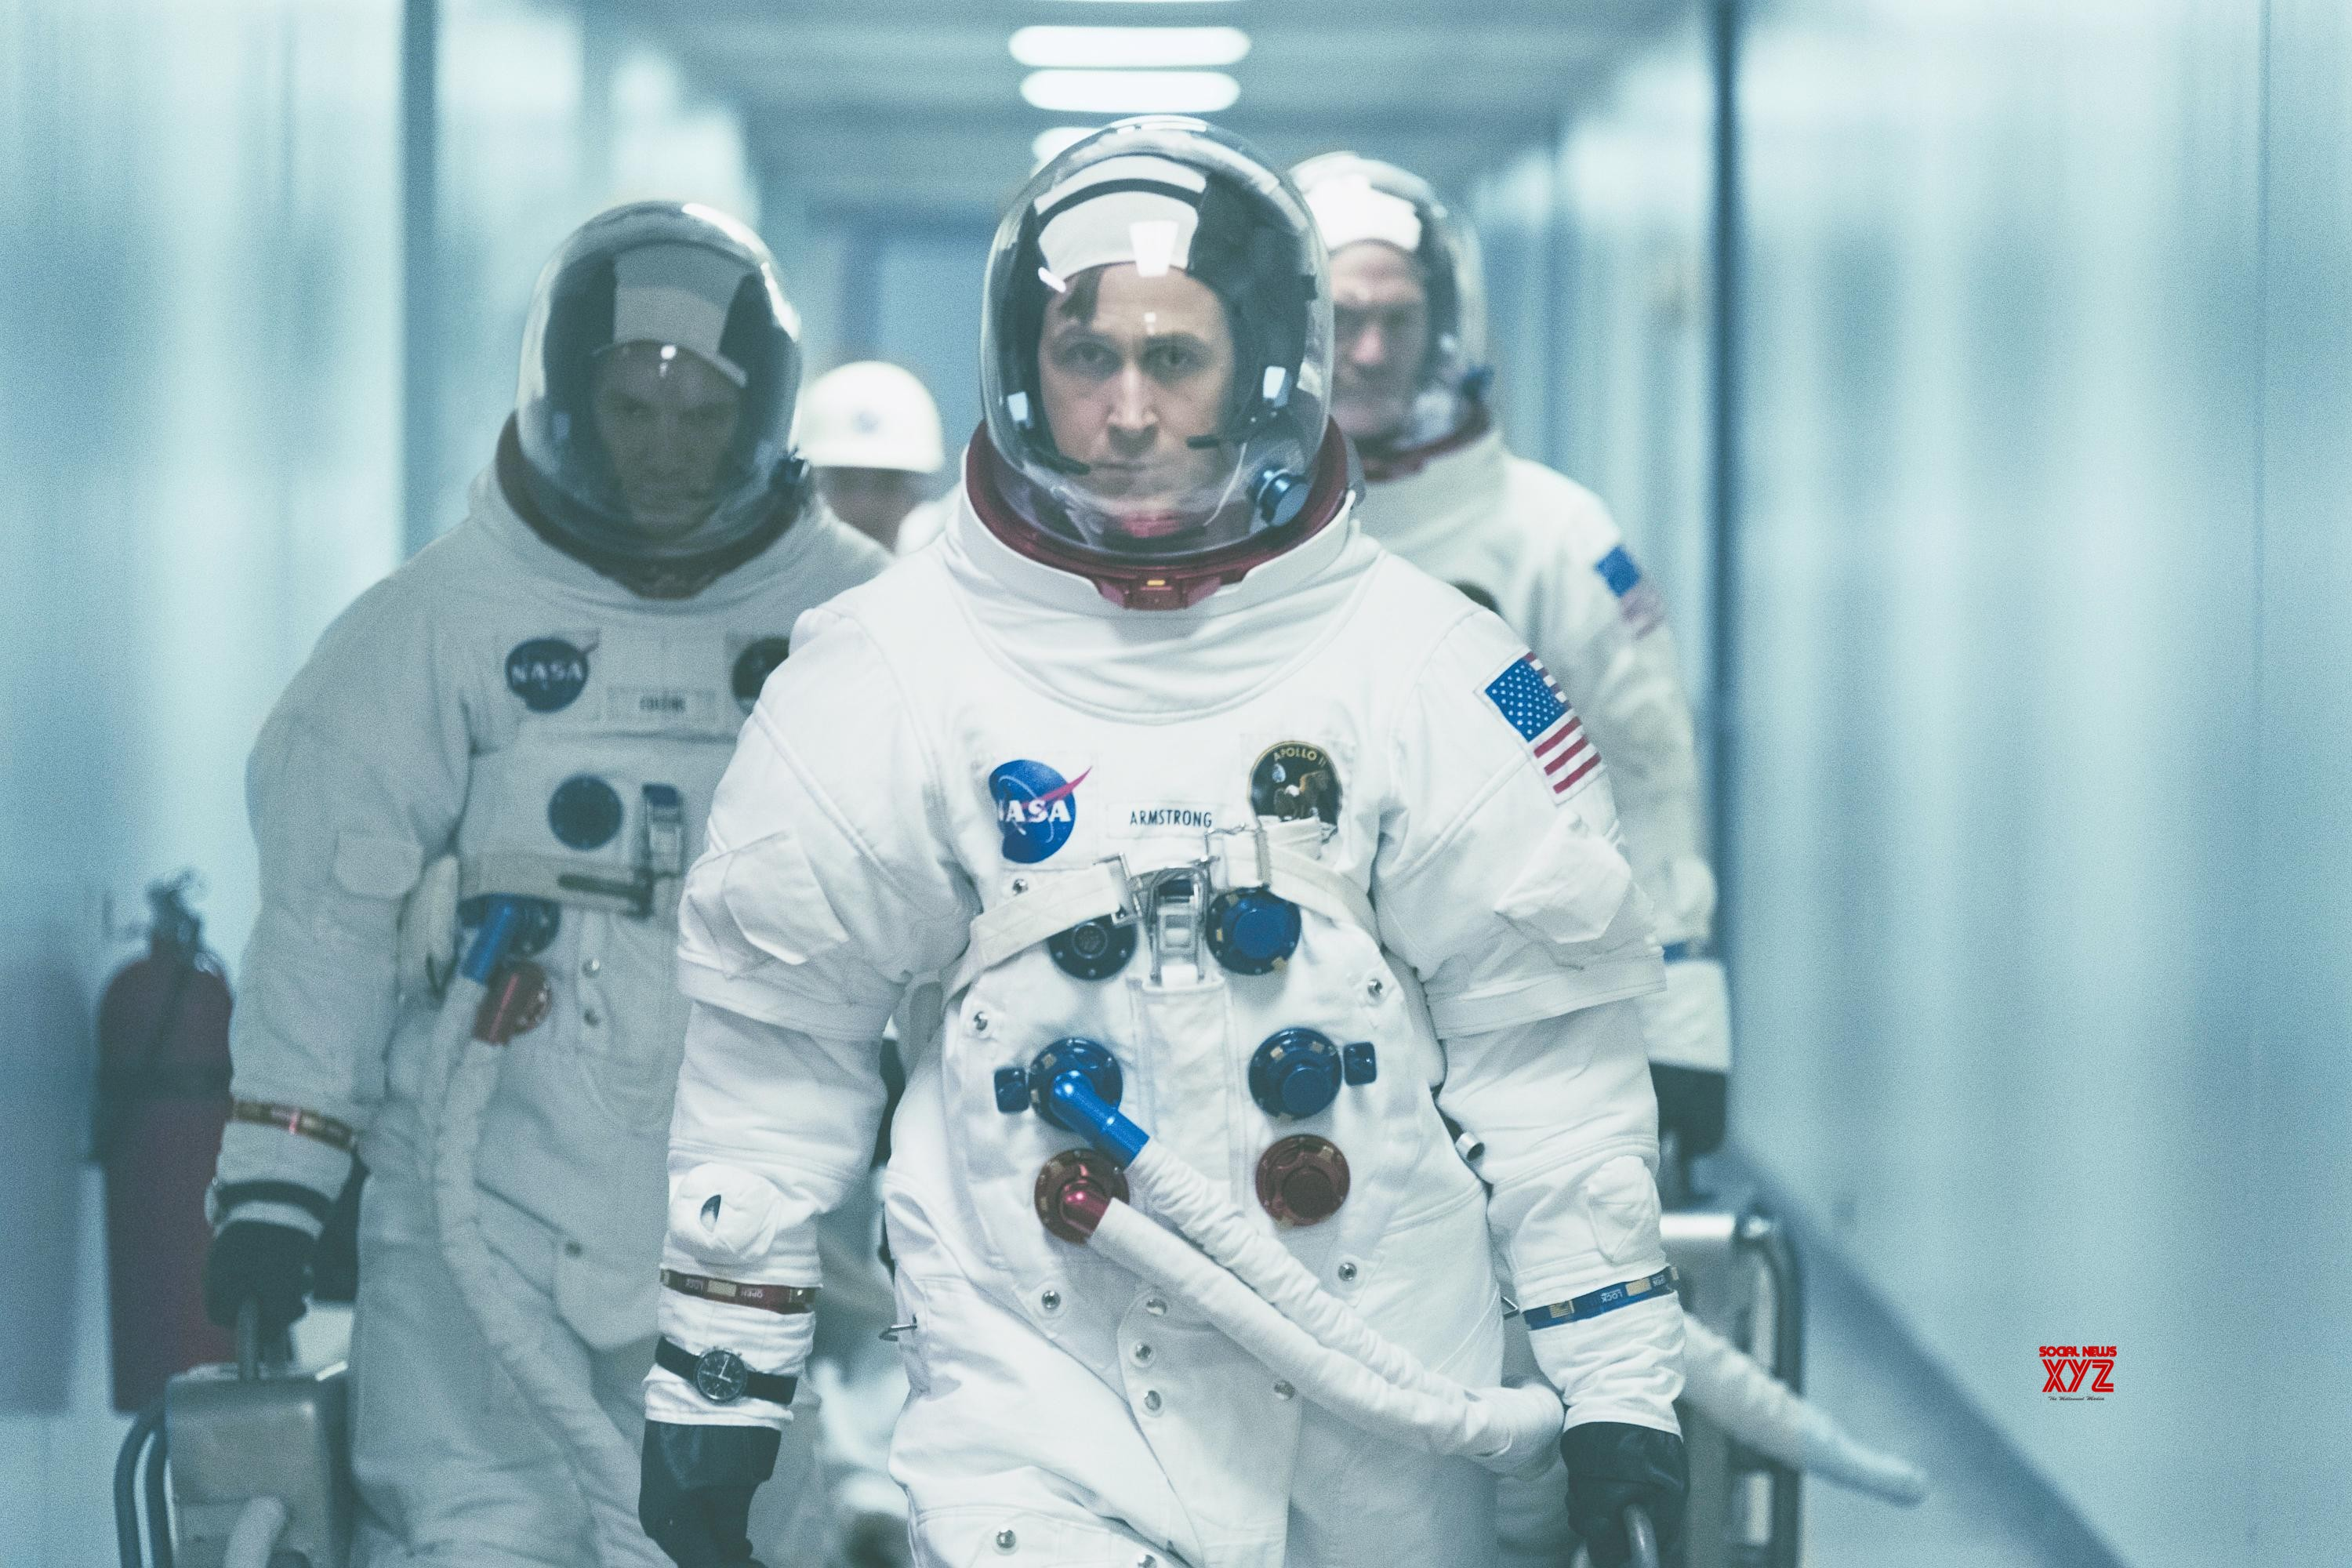 'First Man' Review: A slow, immersive character-driven film (Rating: ***)